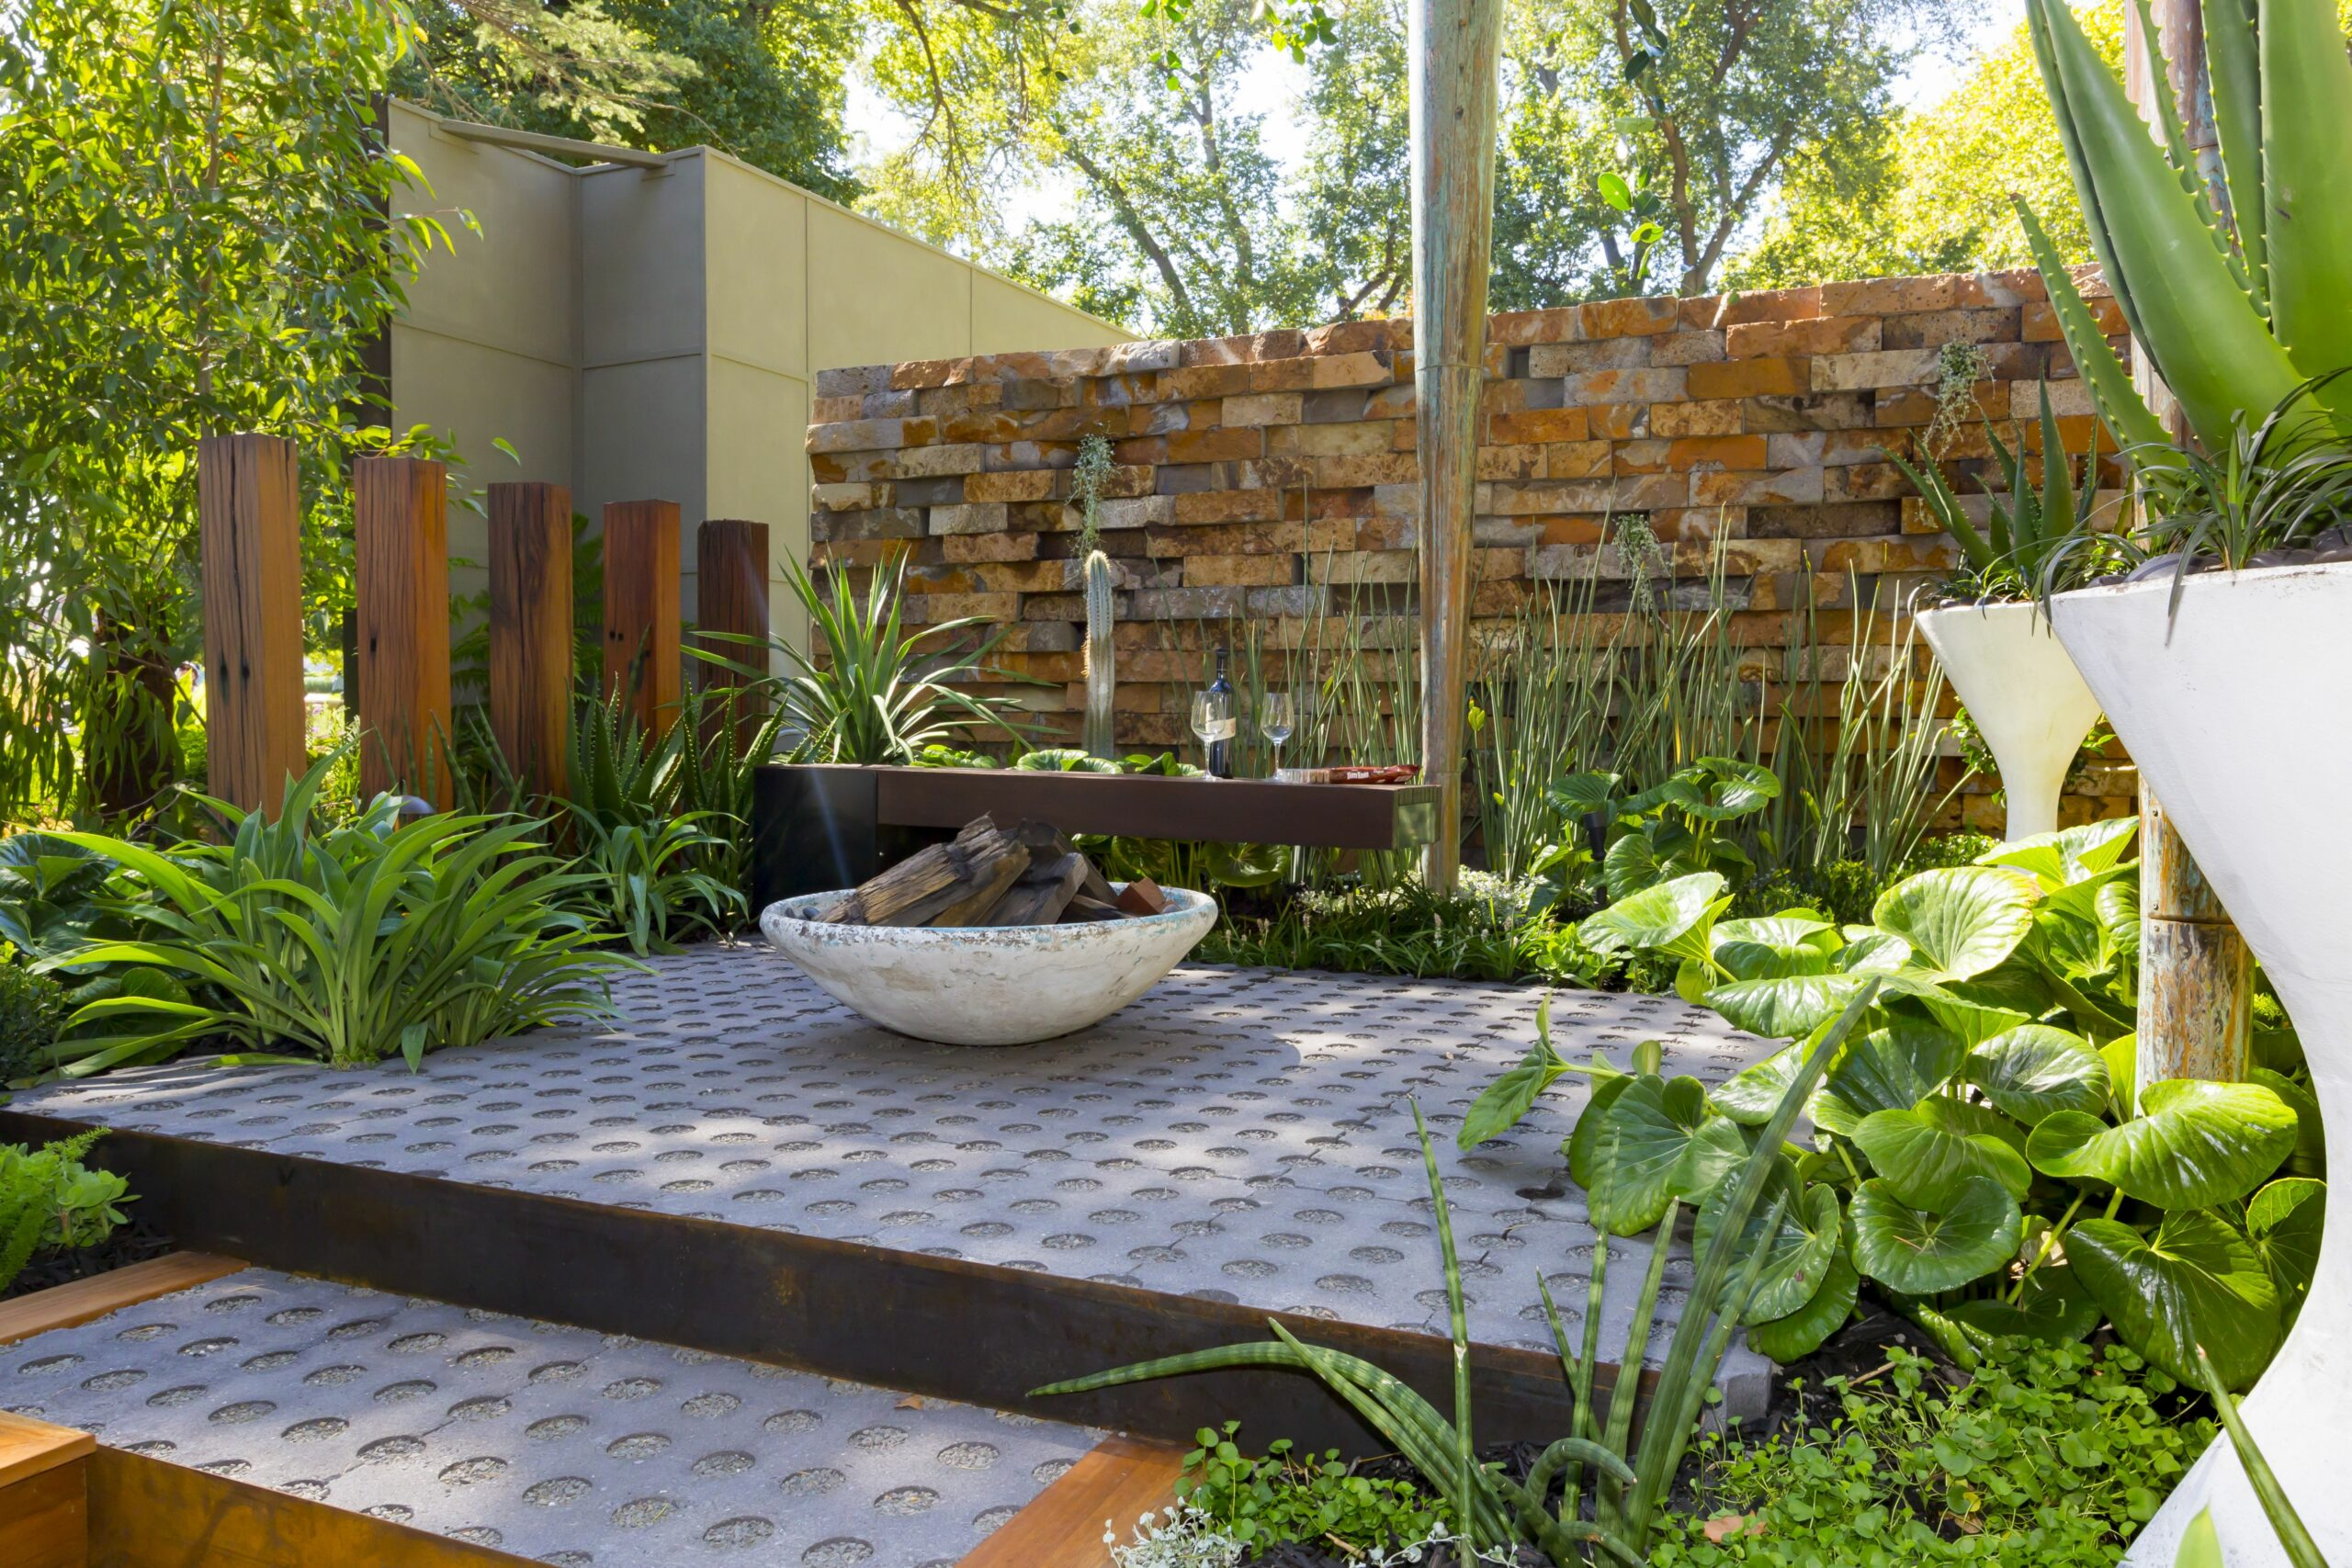 Backyard ideas: 12 reno projects to get it summer-ready - The ...